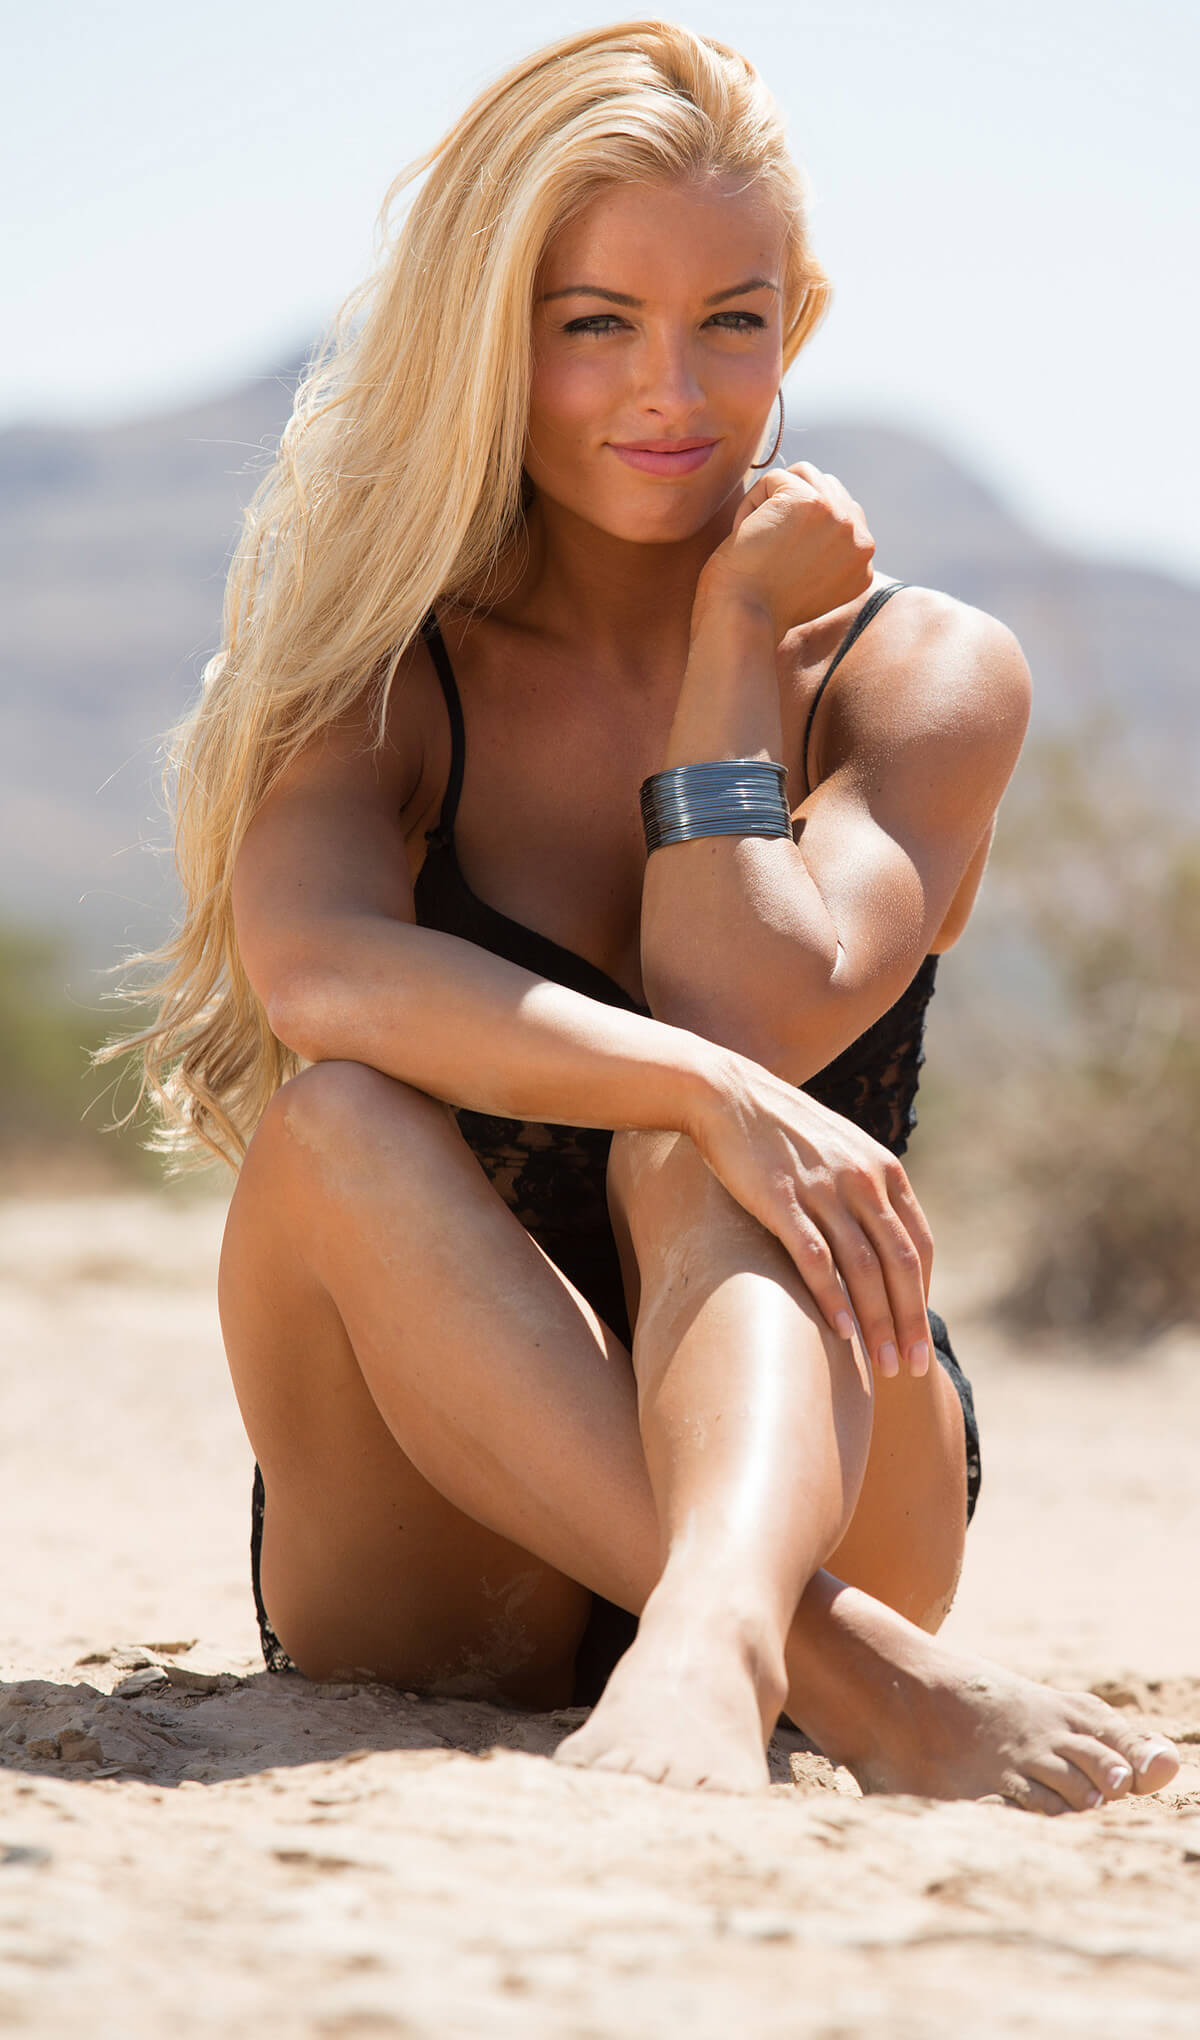 amanda park black personals Amanda park's best 100% free mature women dating site meet thousands of single mature women in amanda park with mingle2's free personal ads and chat rooms our.